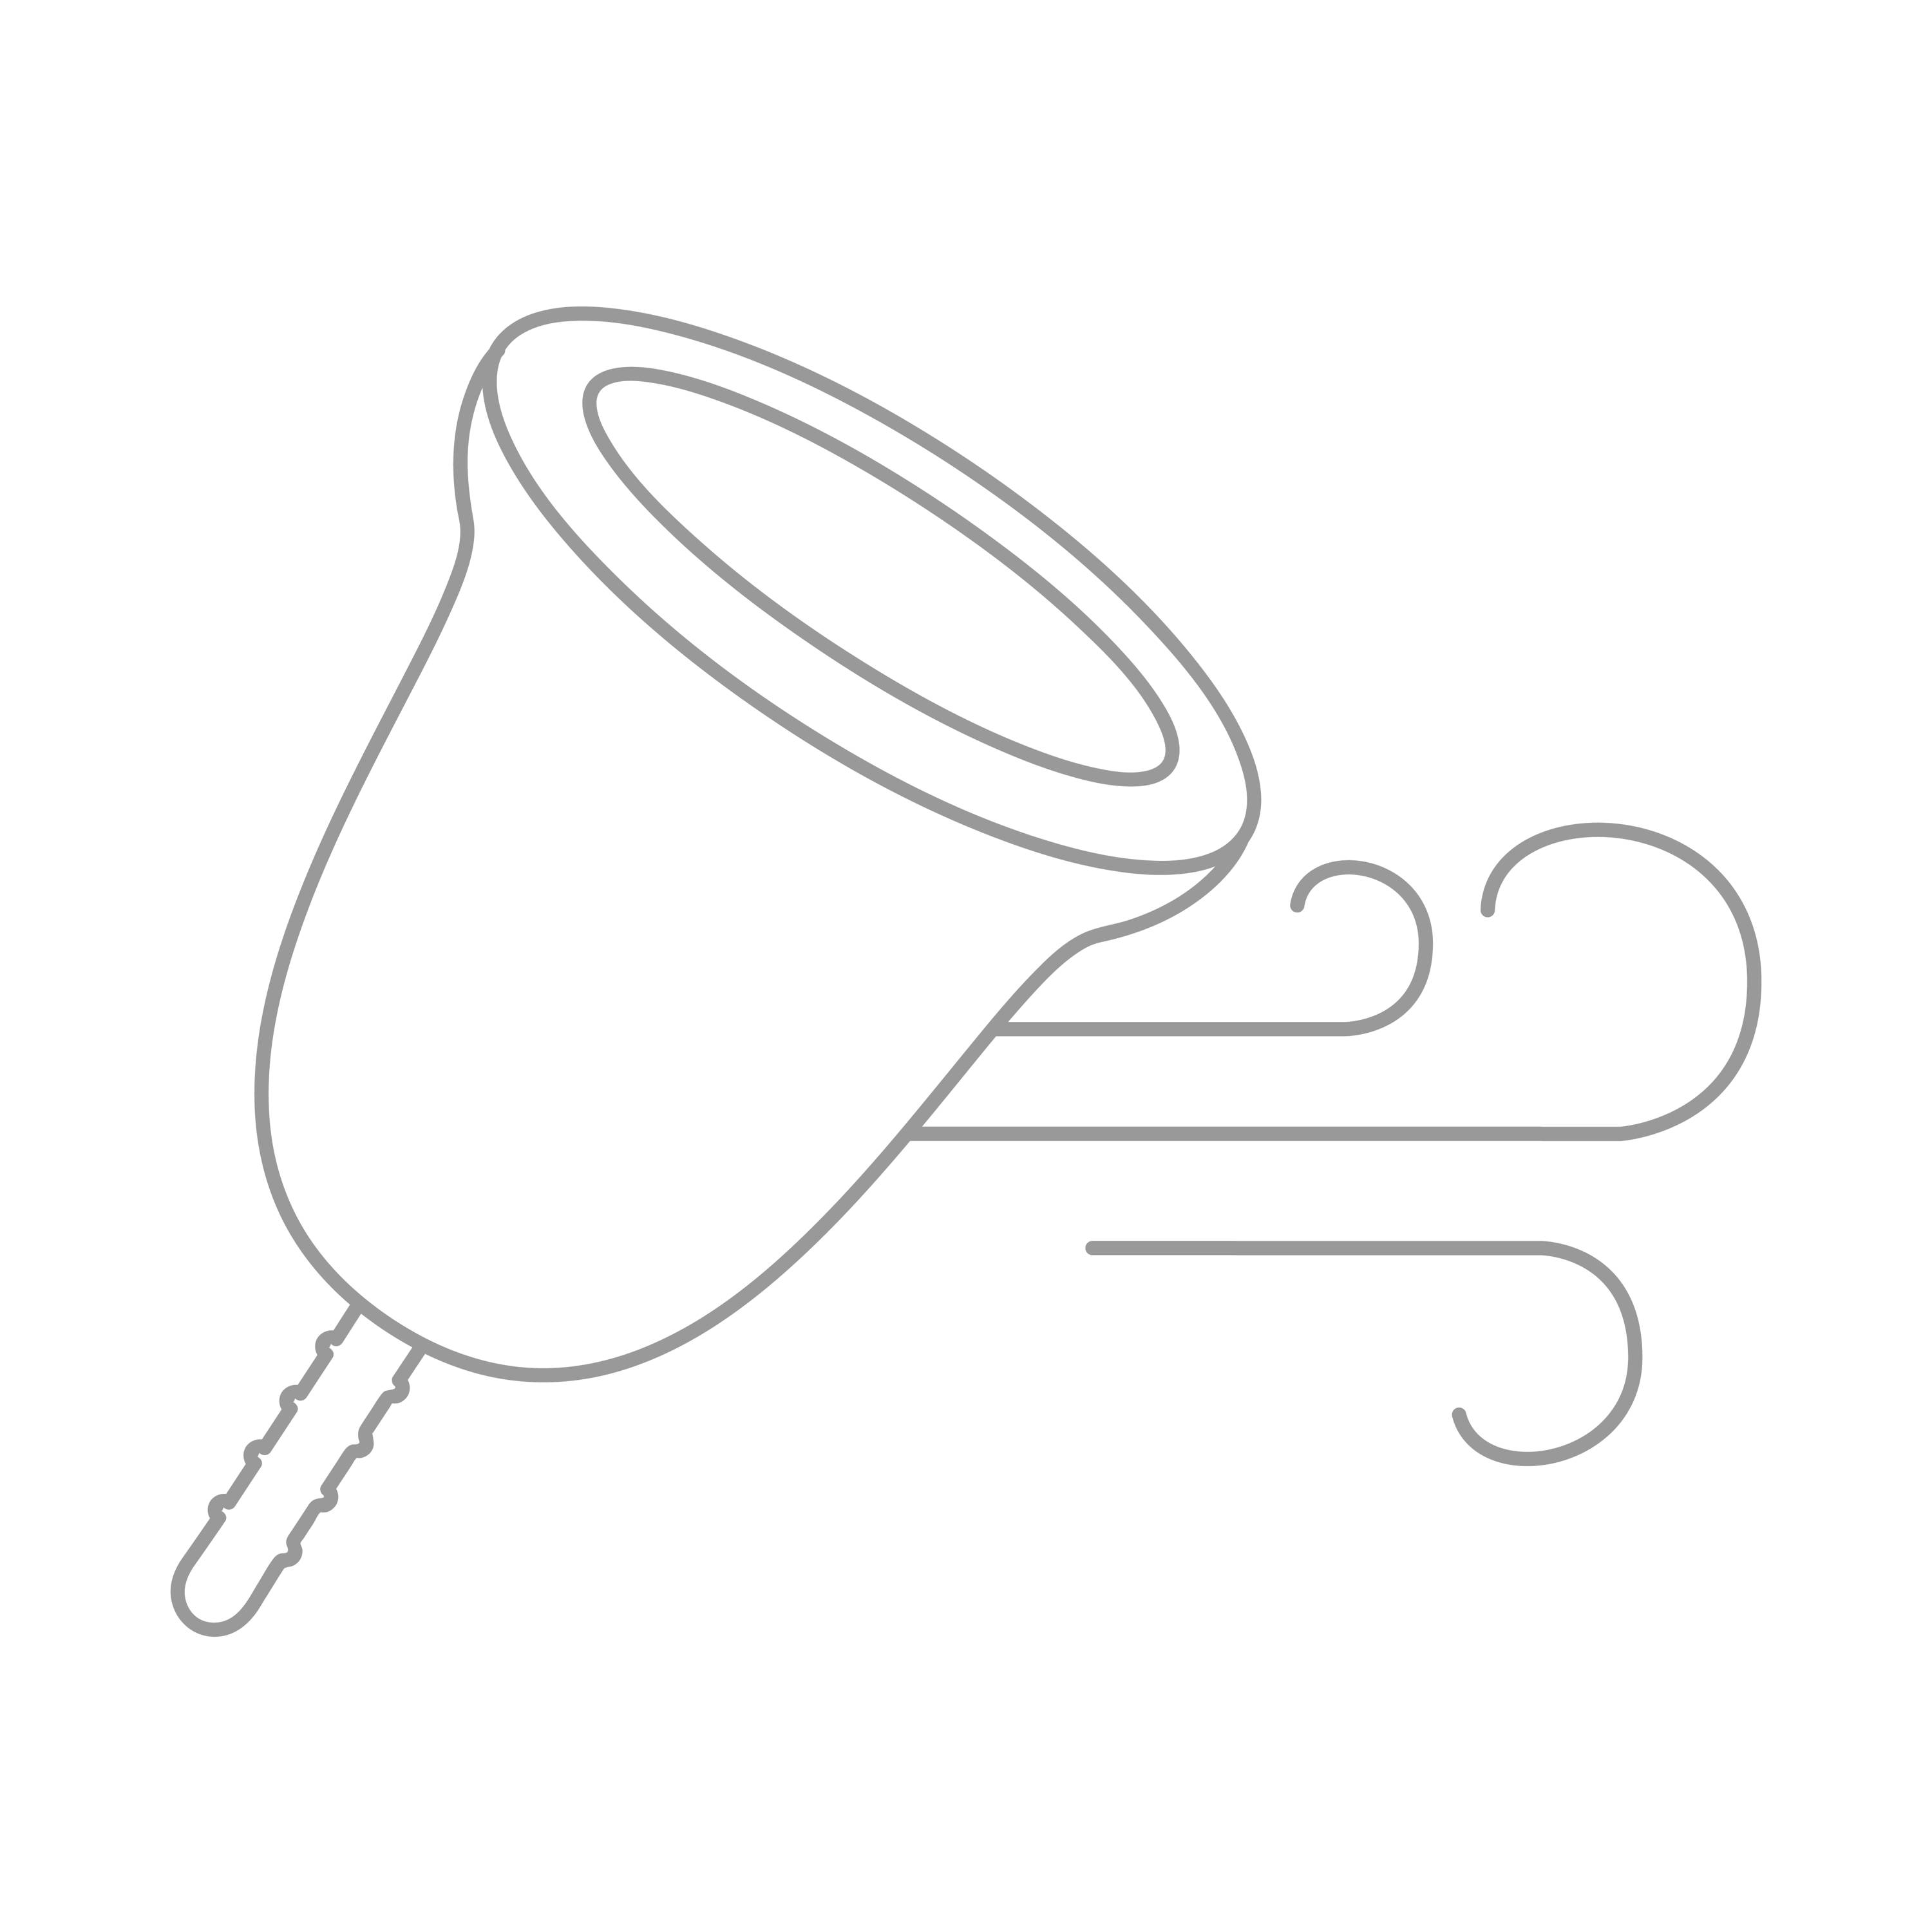 An animated menstrual cup with airstreams appearing beside it, indicating the drying after cleansing process.